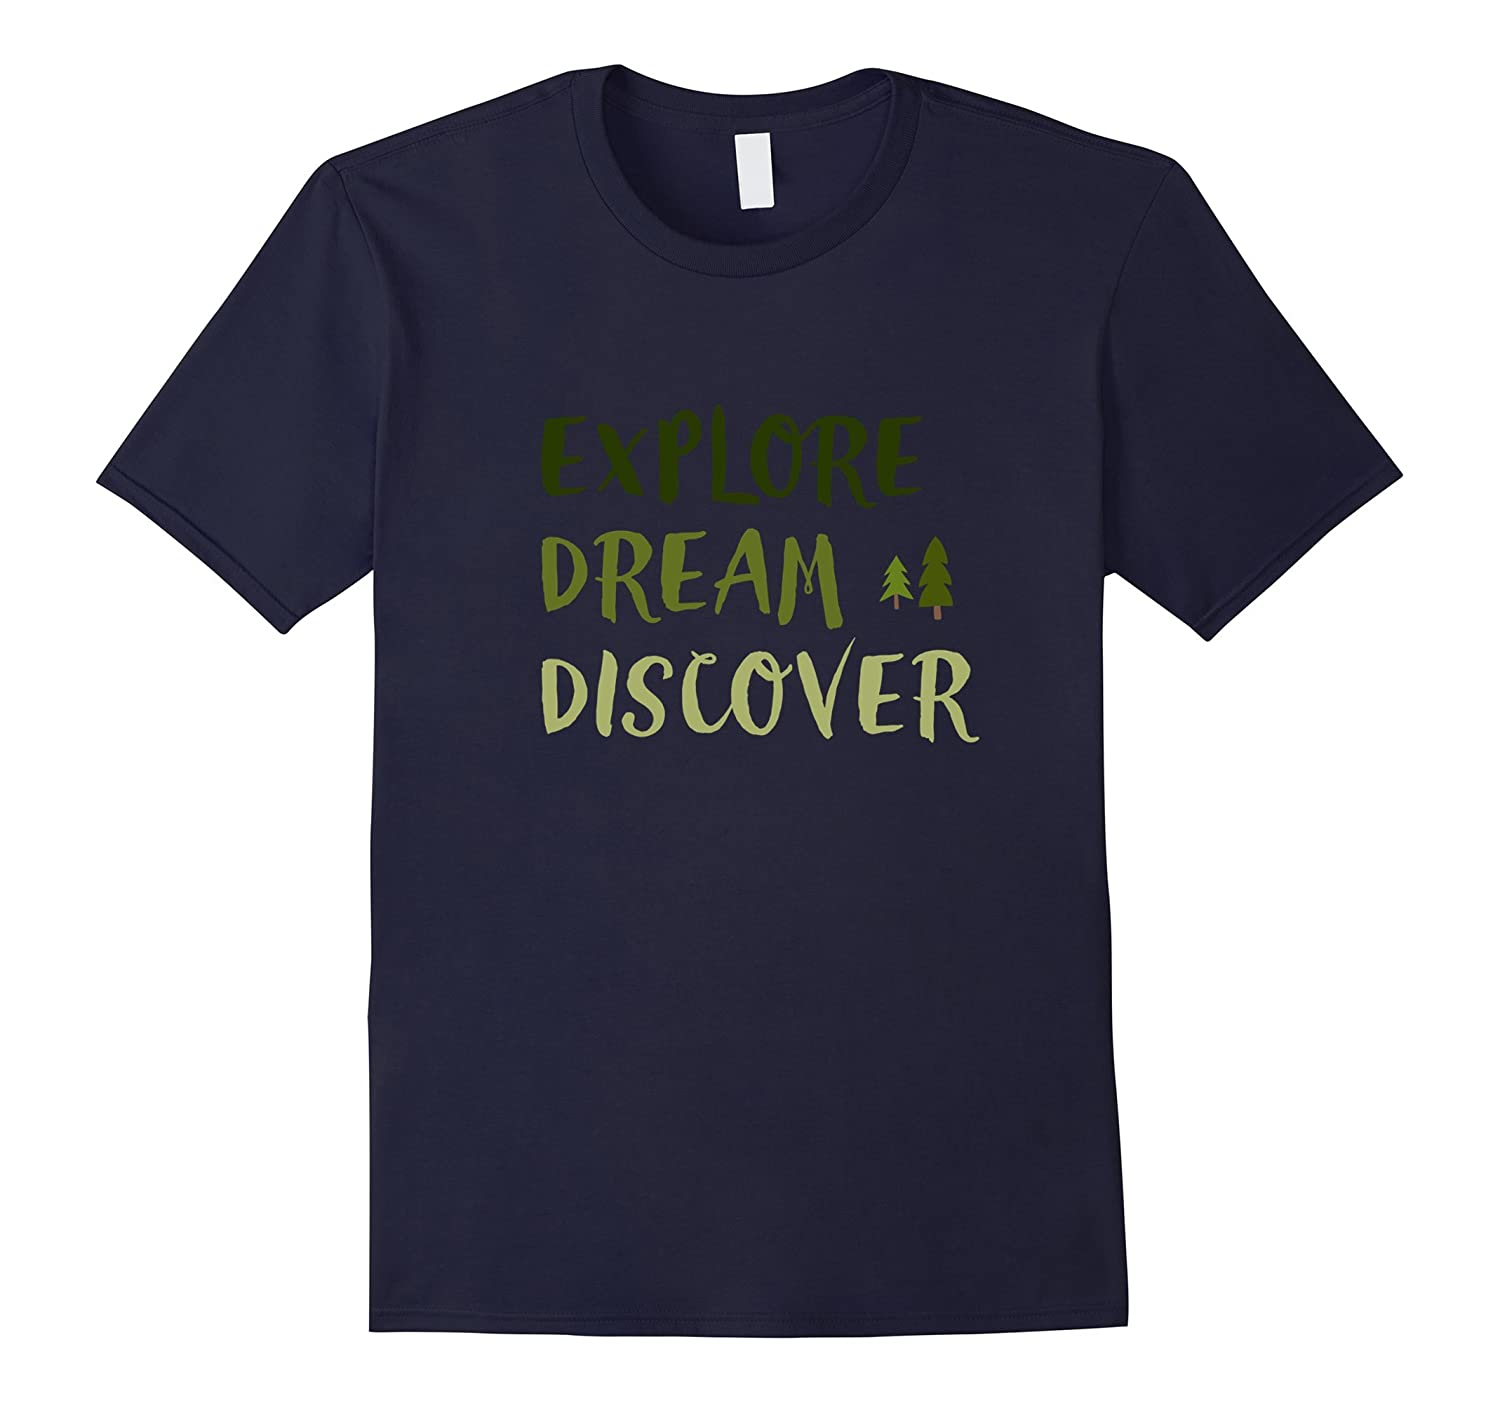 Explore Dream Discover Hiking Trail Walking Outdoors Shirt-TH